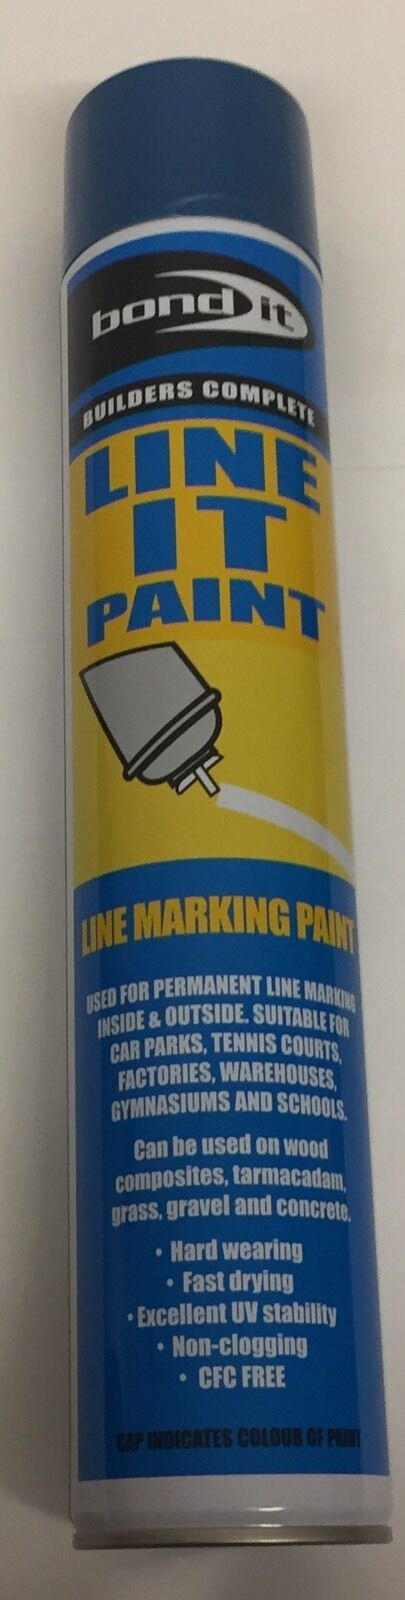 Bond It - Line Marker Paint Blue